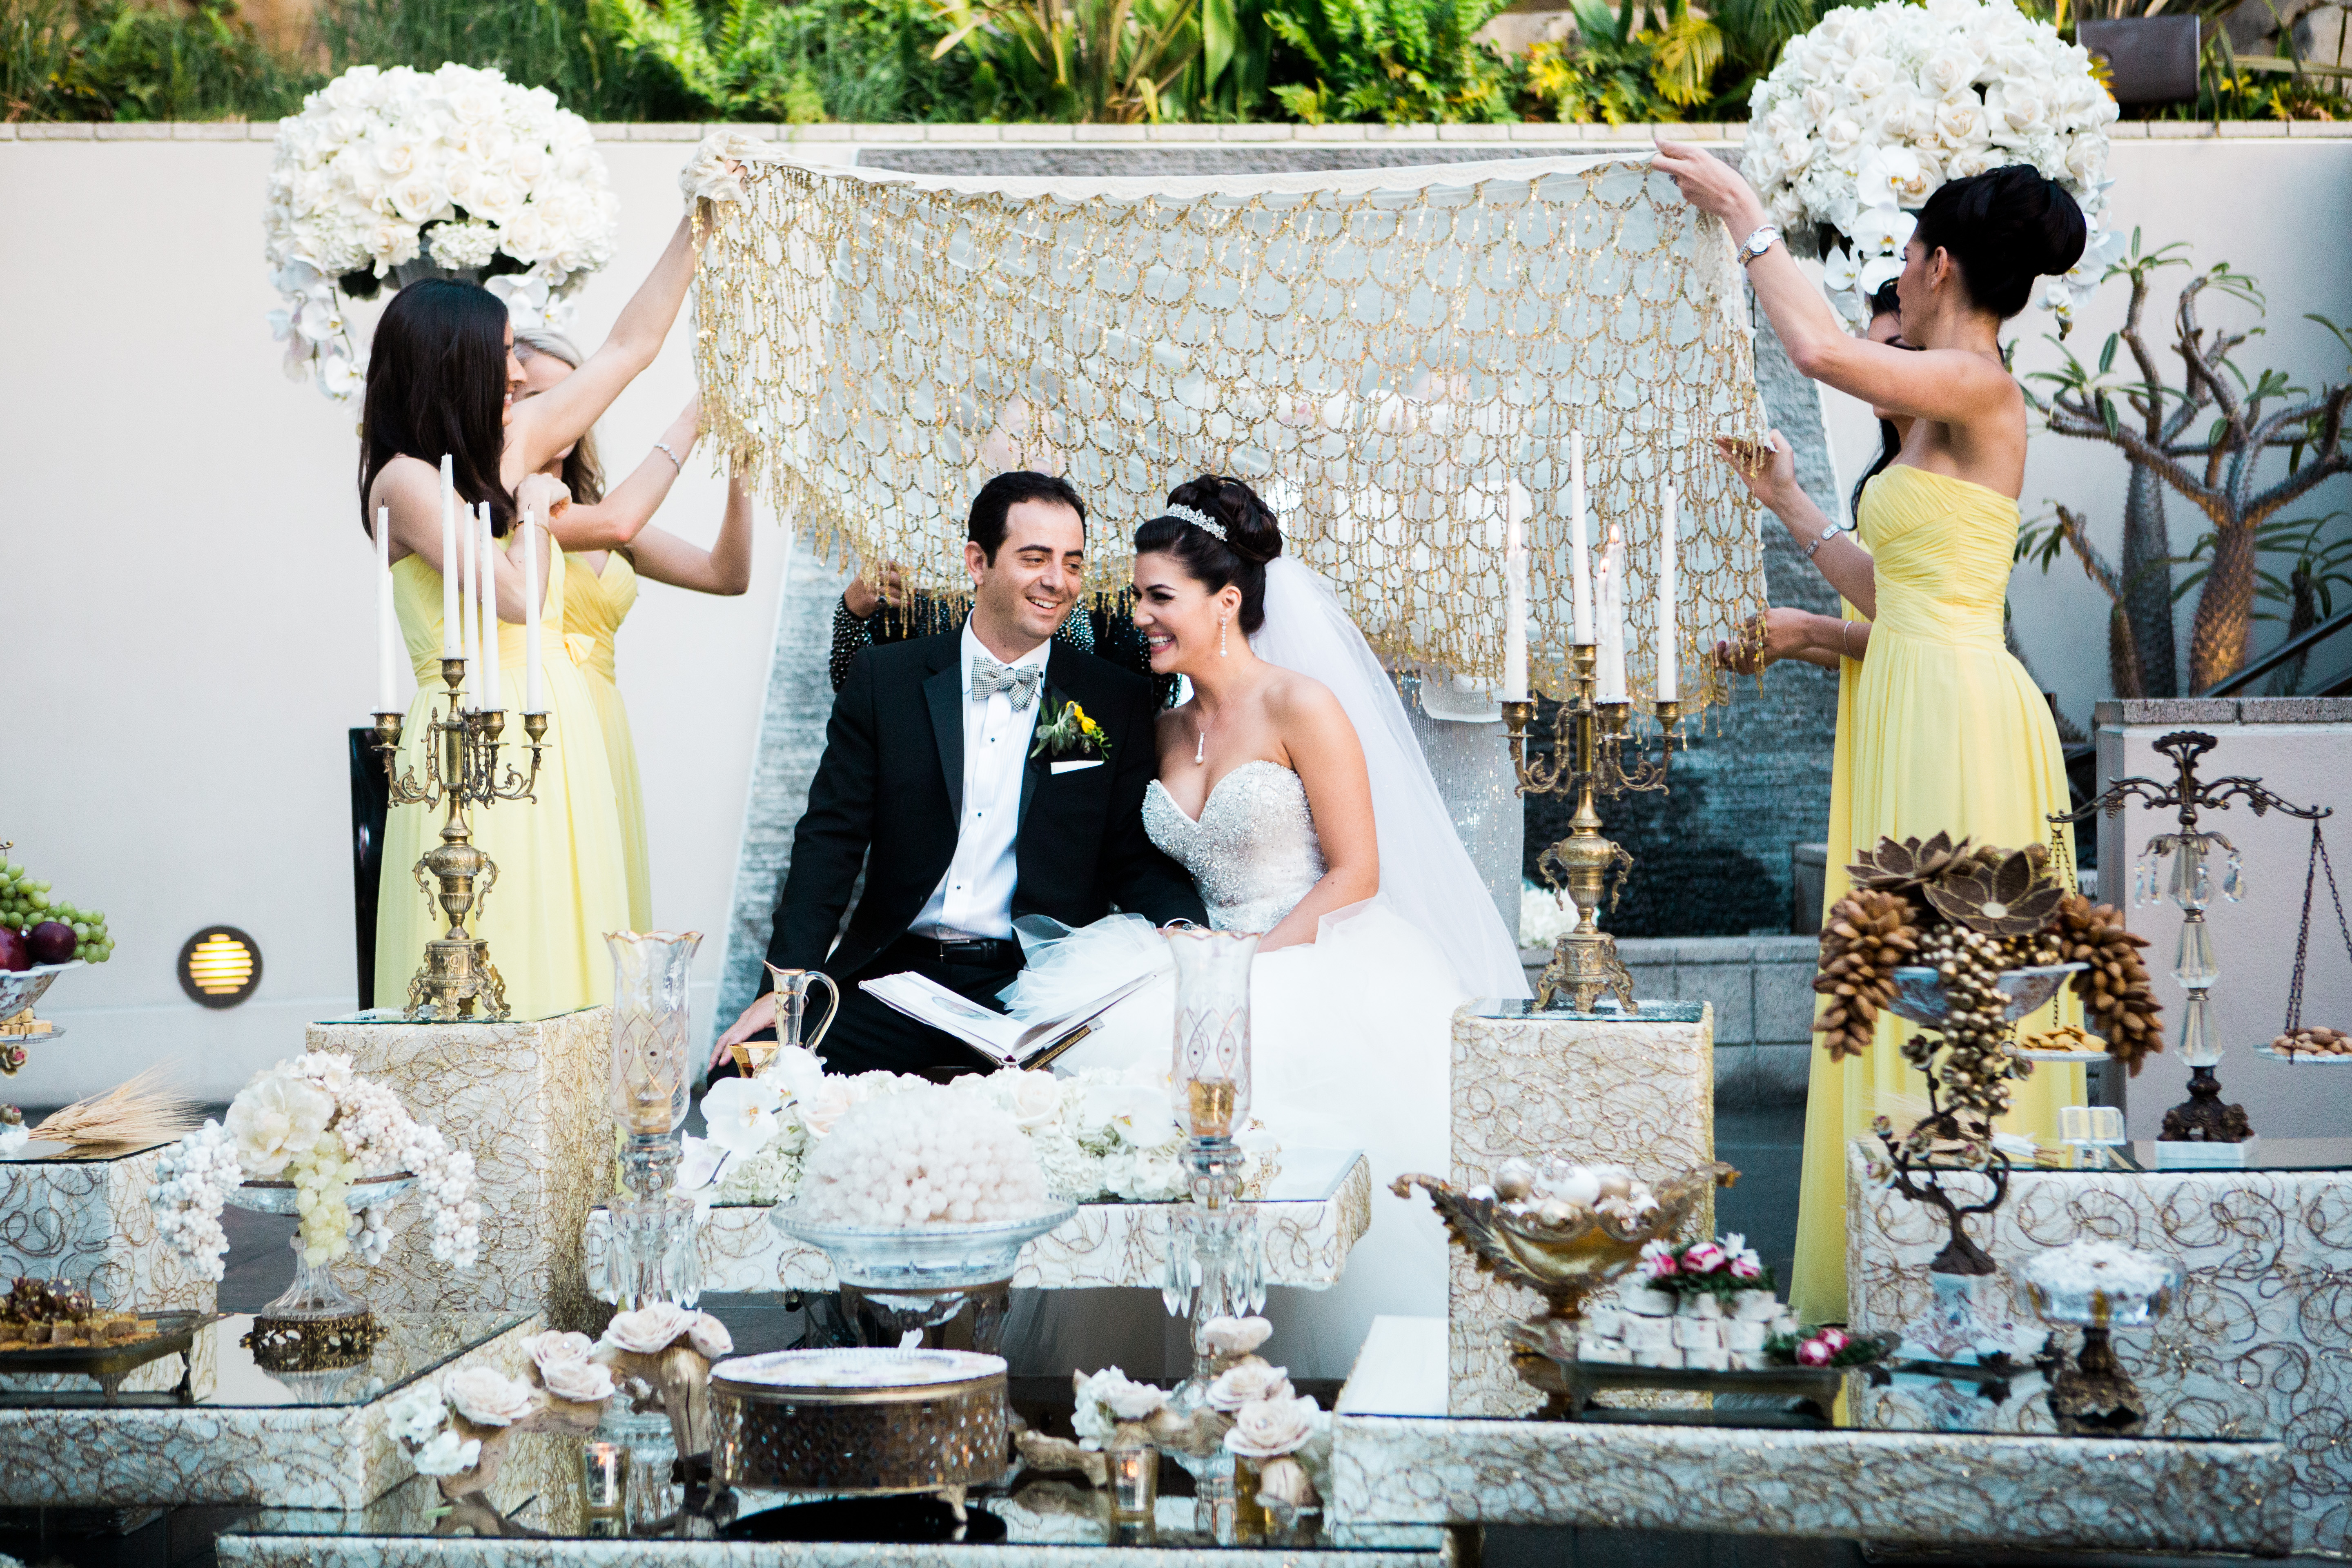 Paris & Pajman: the Perfect Persian Wedding - Seven Degrees